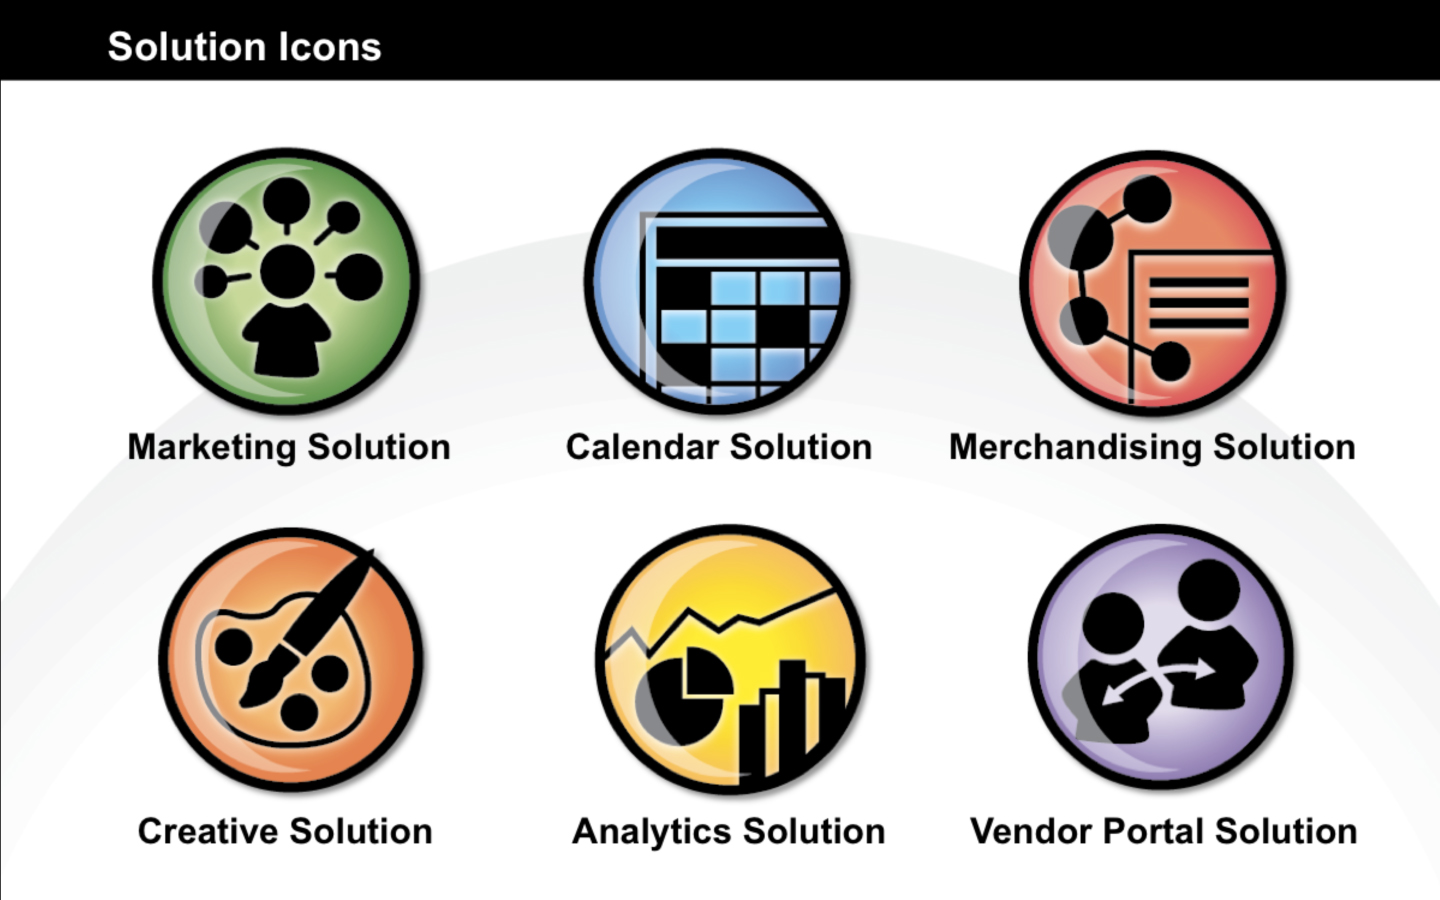 <p>Branded icons for product solutions</p>